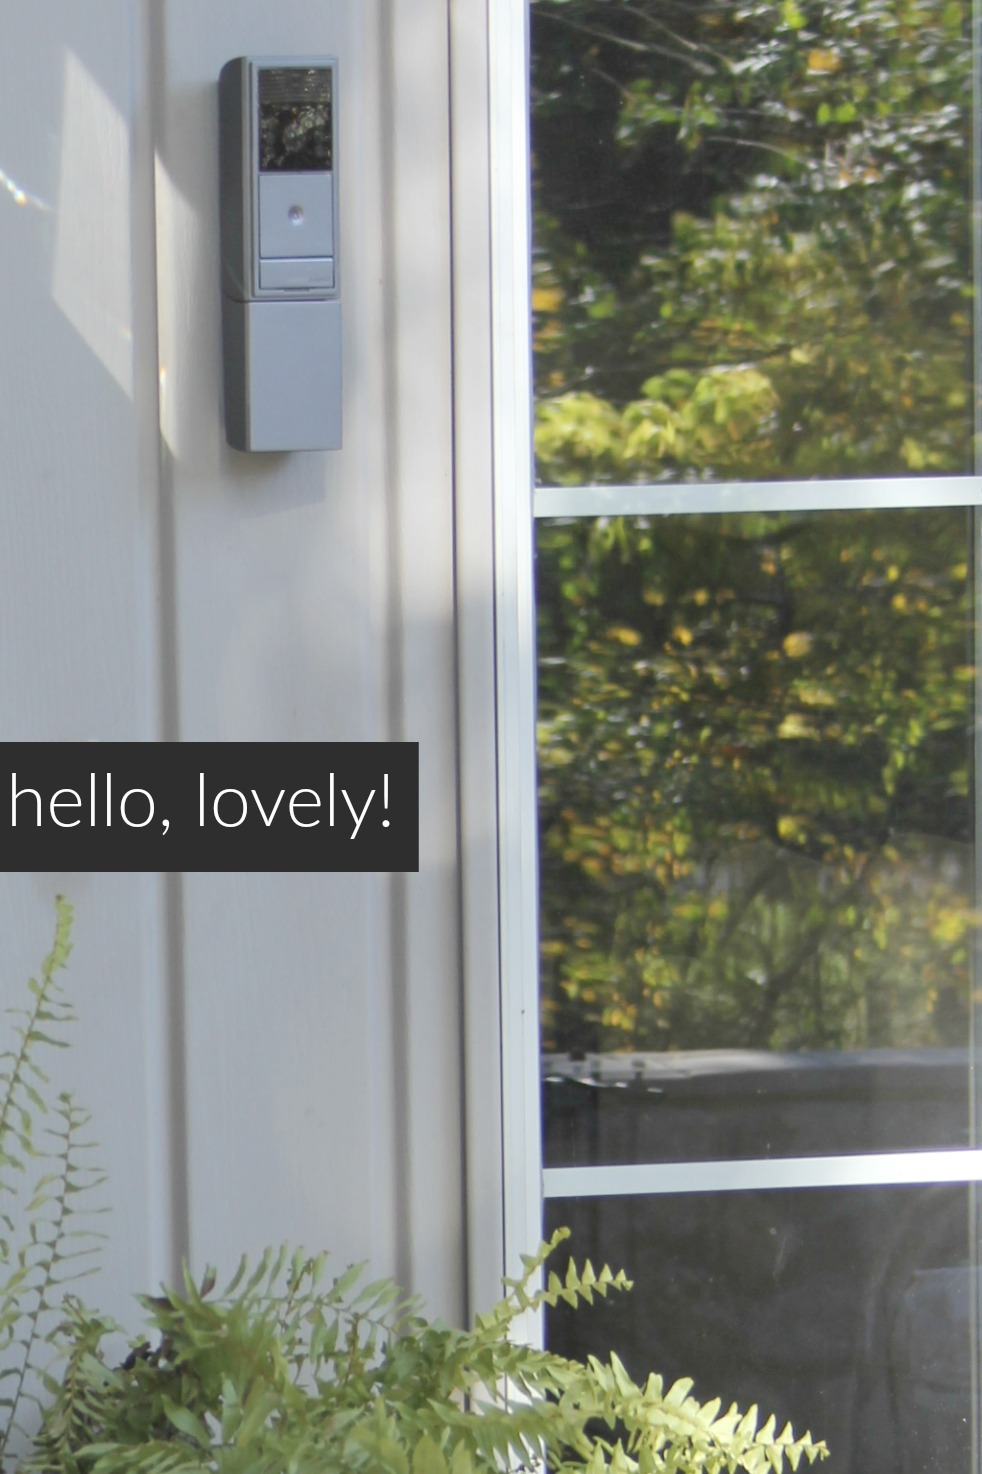 Exterior video doorbell intercom system from adorne - Hello Lovely